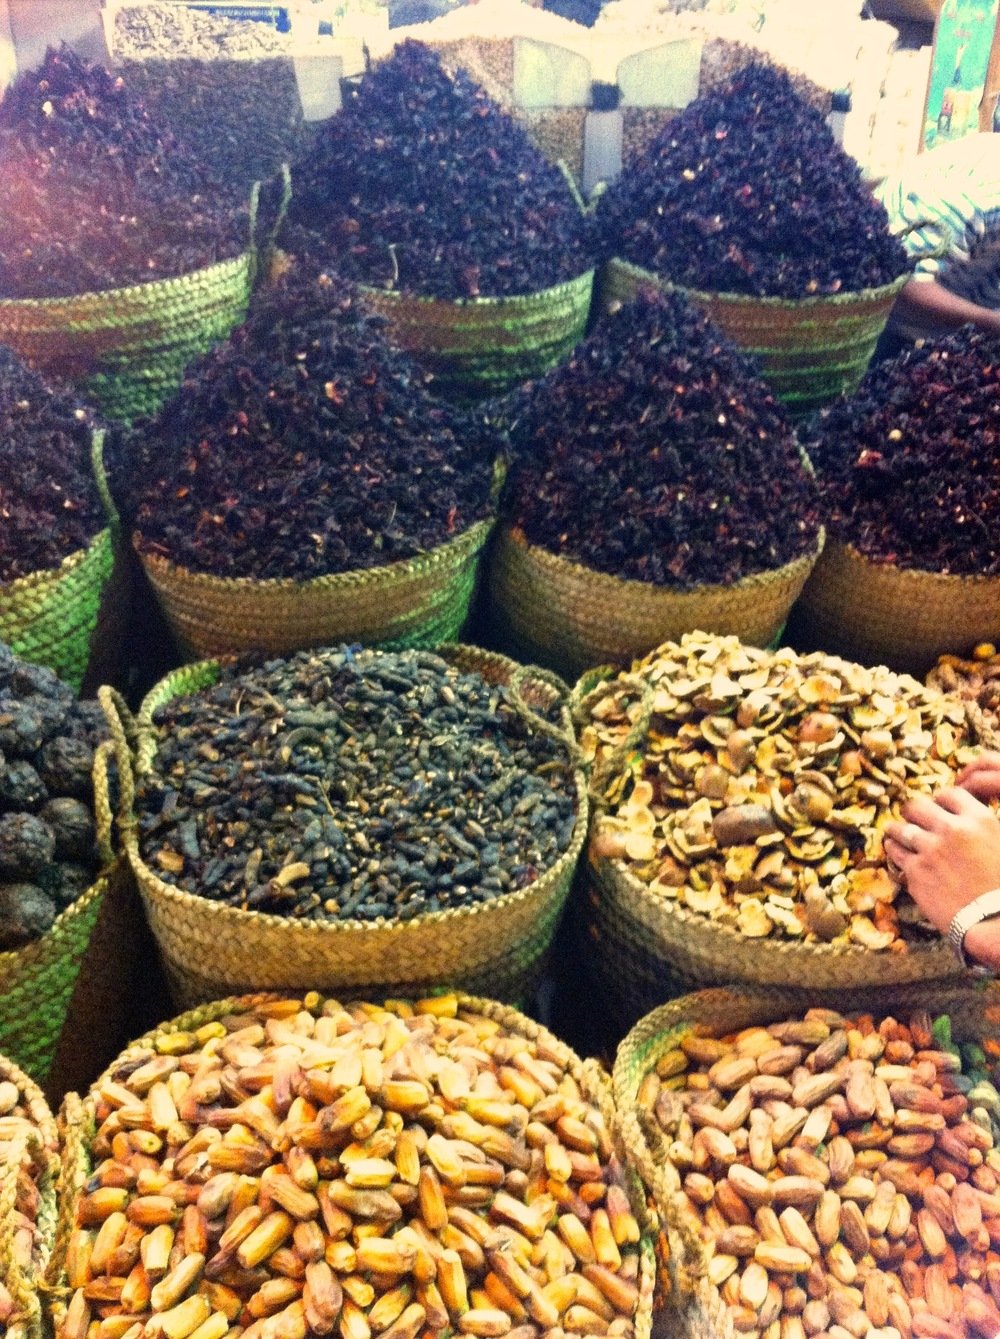 Hibiscus, tamarnid, Peanuts and more at a market in Thebes